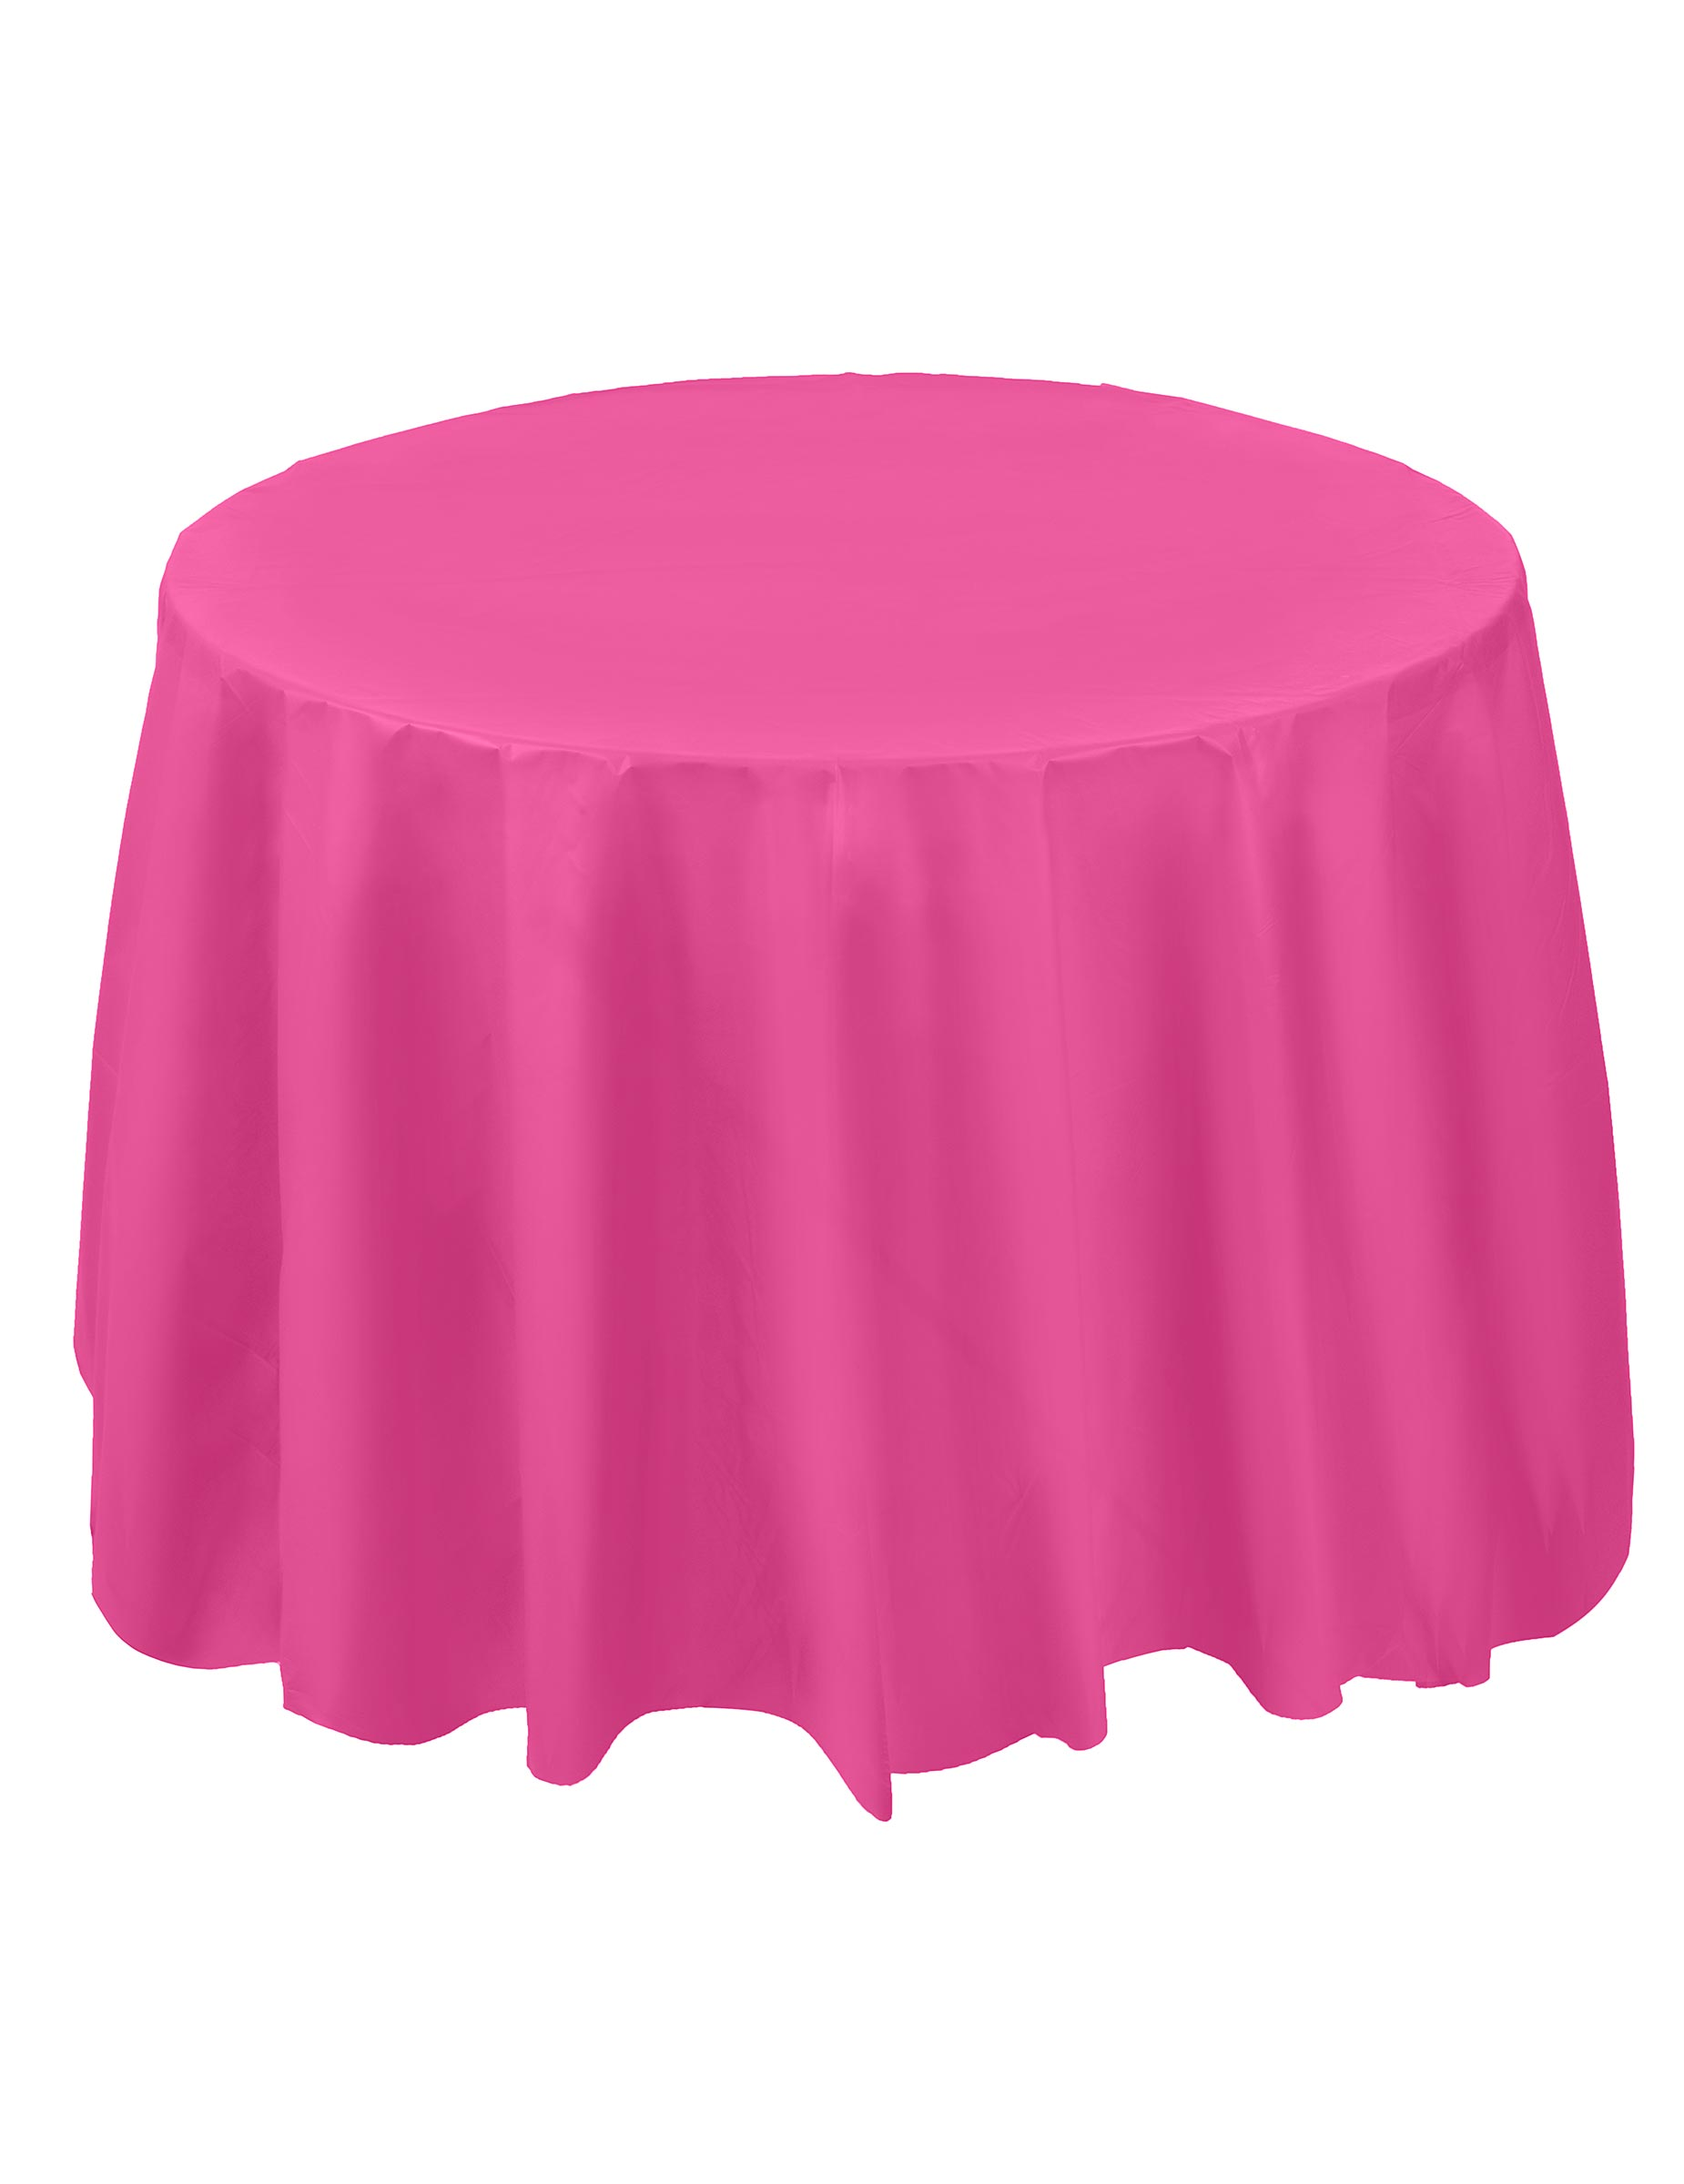 nappe plastique ronde rose fuchsia 213 cm d coration. Black Bedroom Furniture Sets. Home Design Ideas